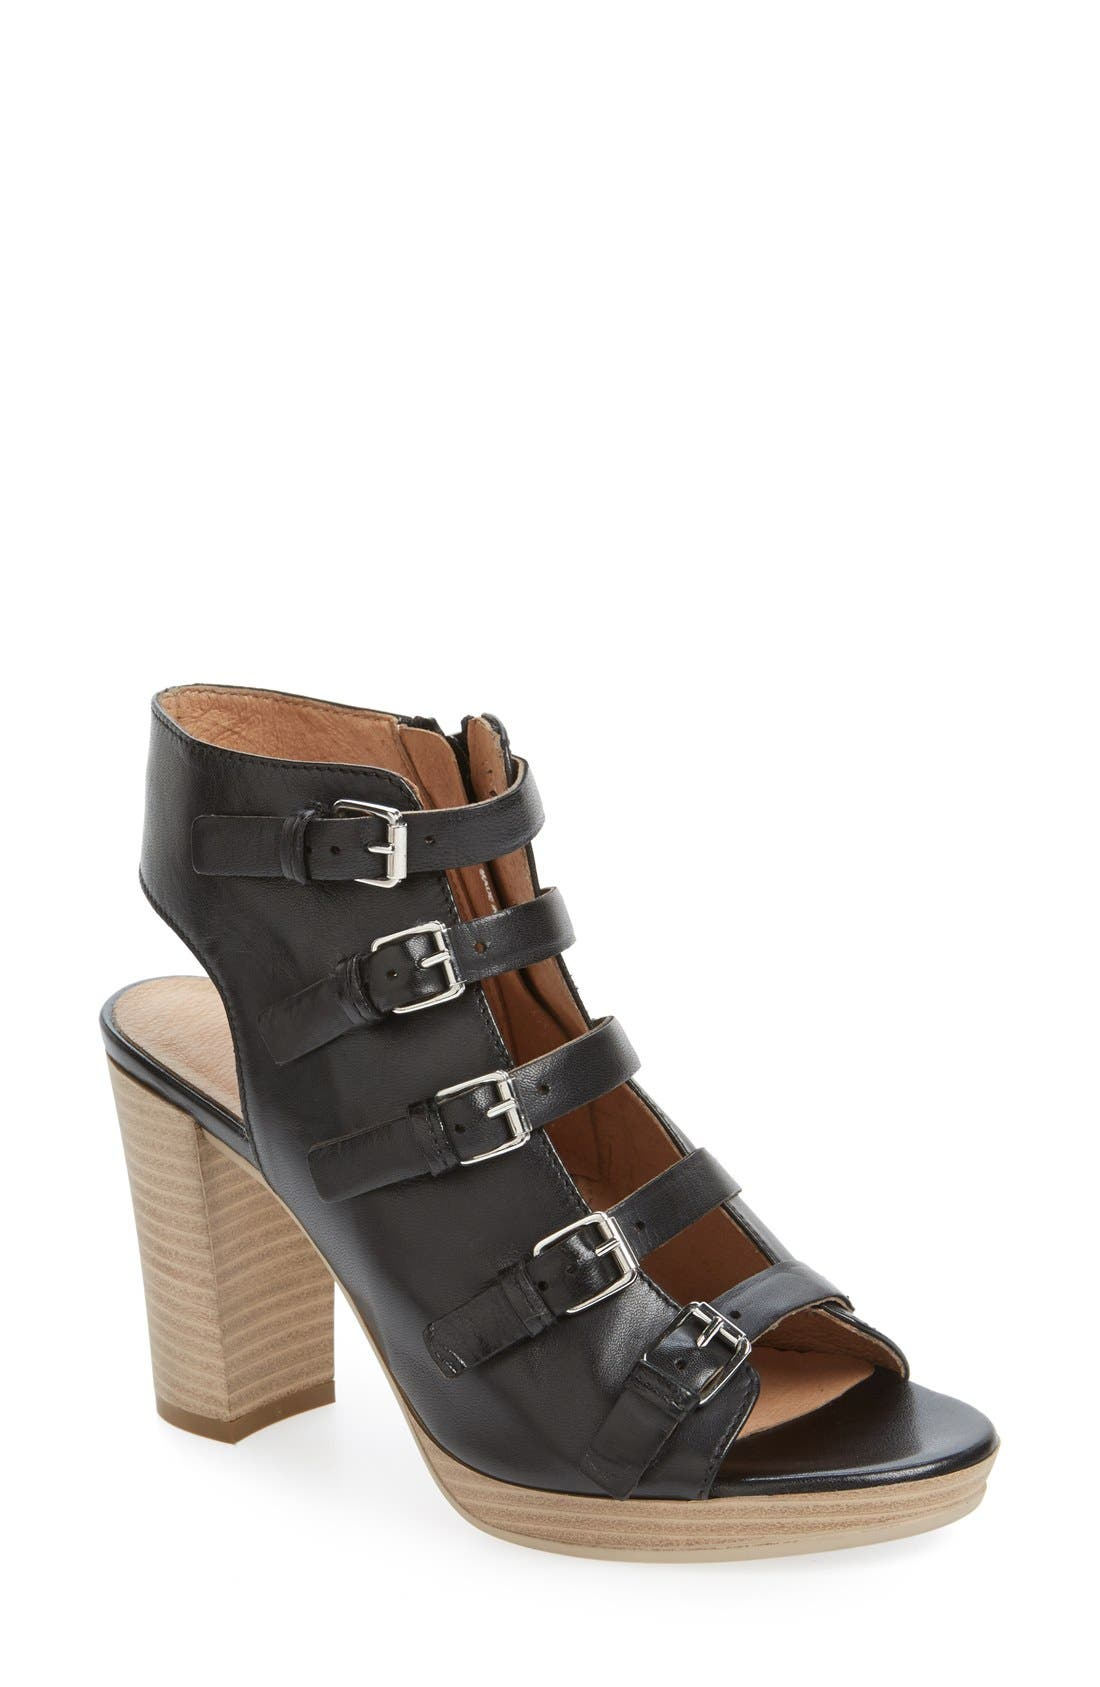 KENNETH COLE NEW YORK 'Kennedy' Buckle Strap Block